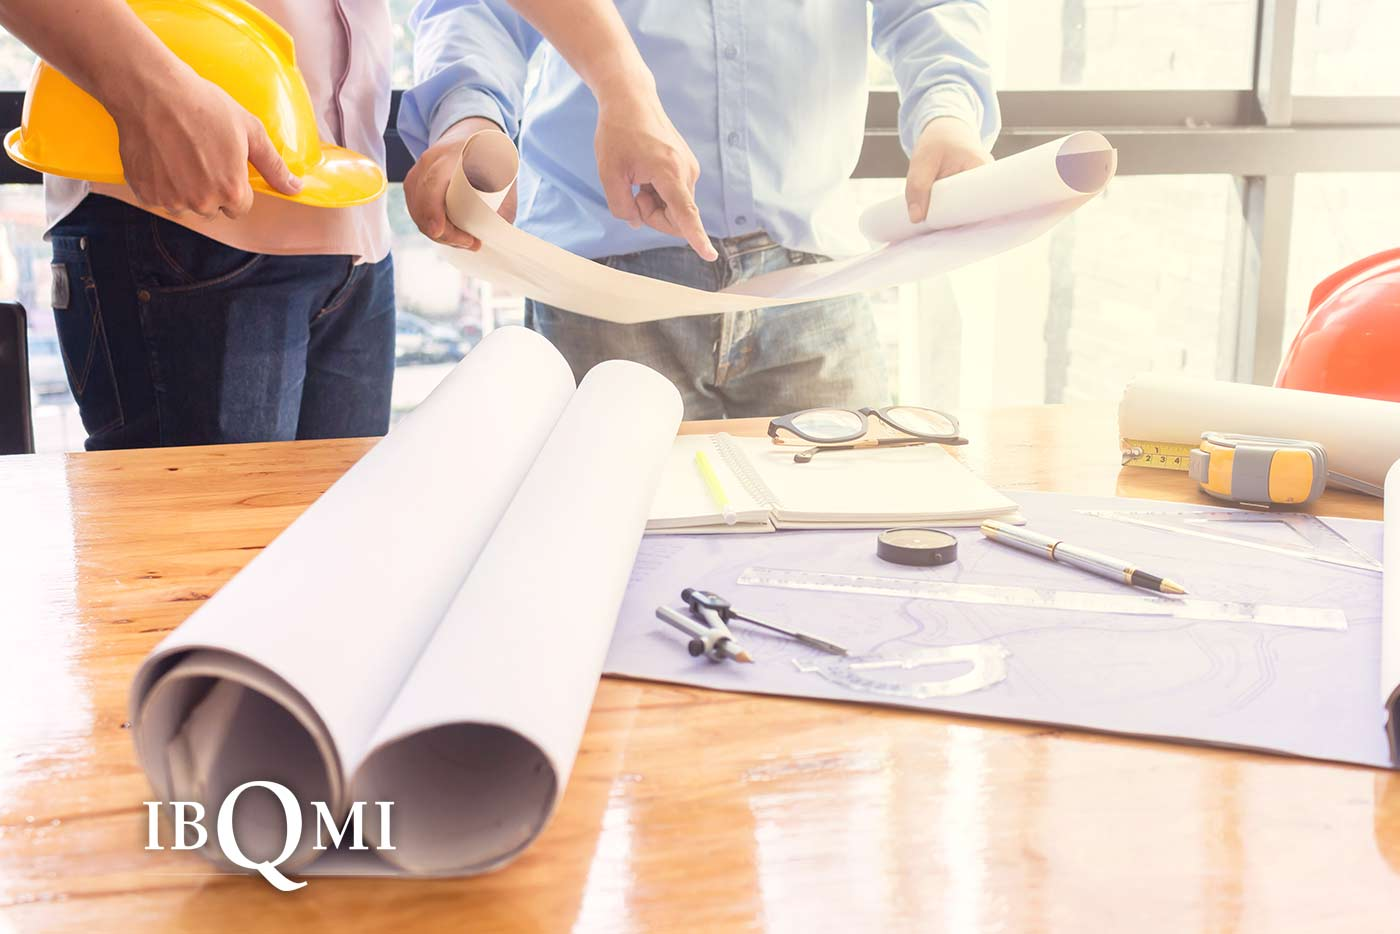 The best approach to select a product for improvements with tqm